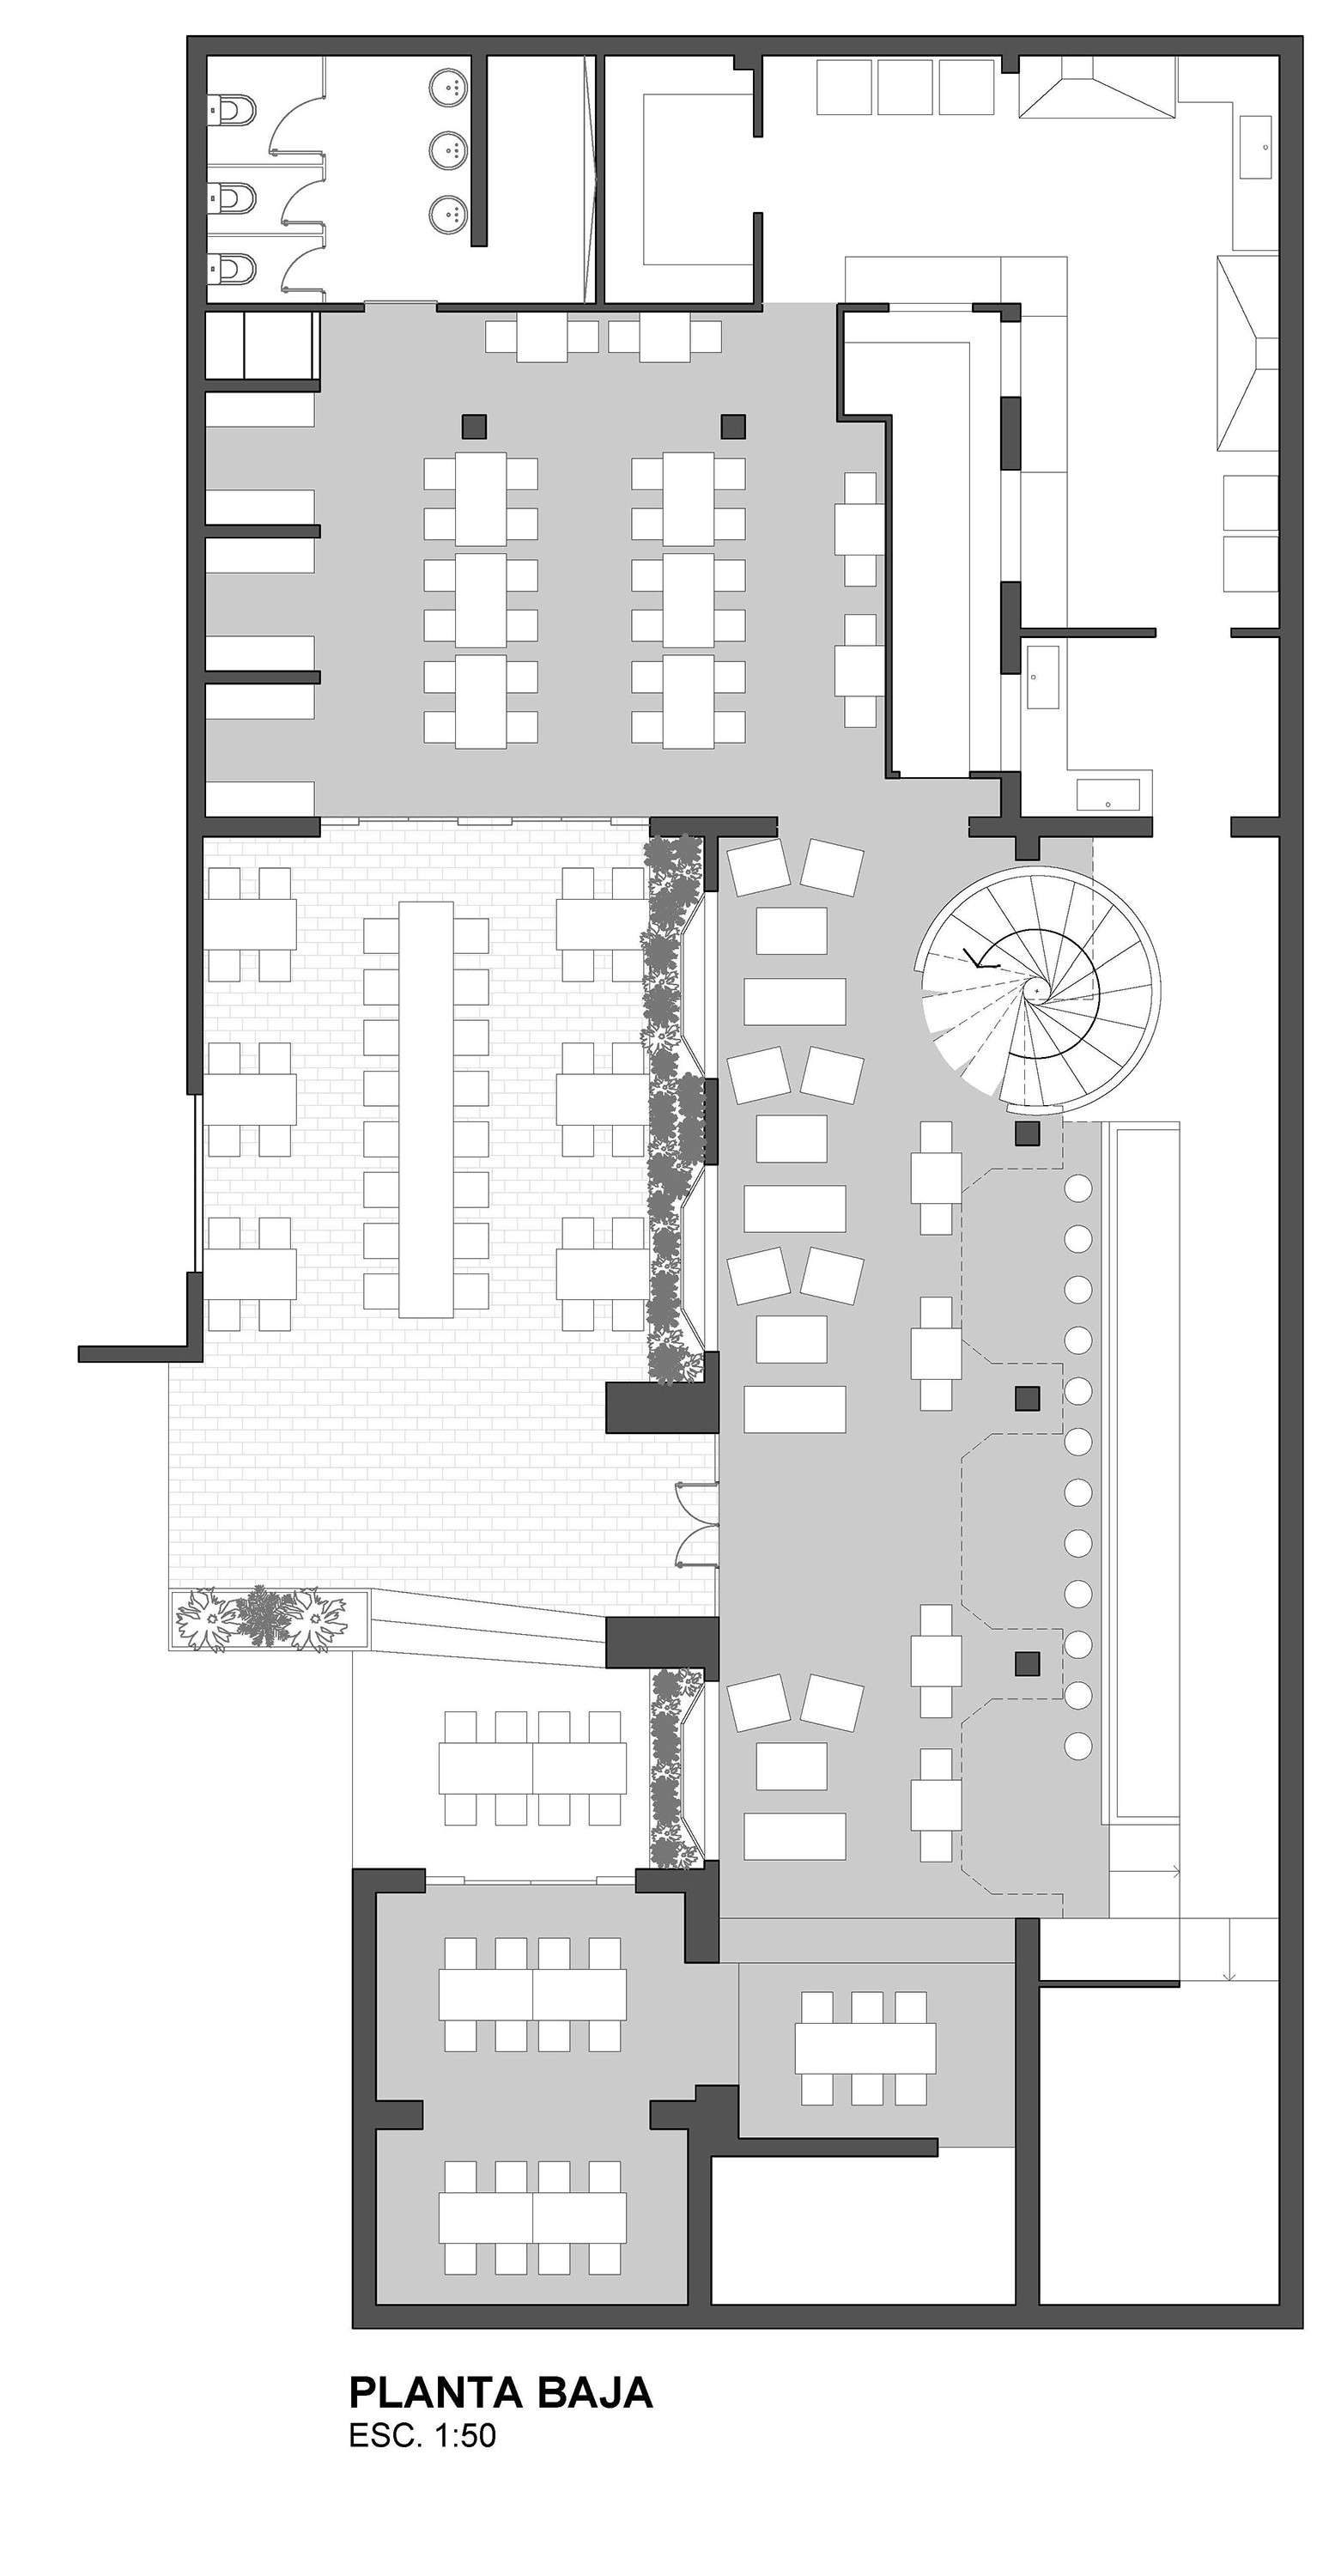 capitan brewery floor plan